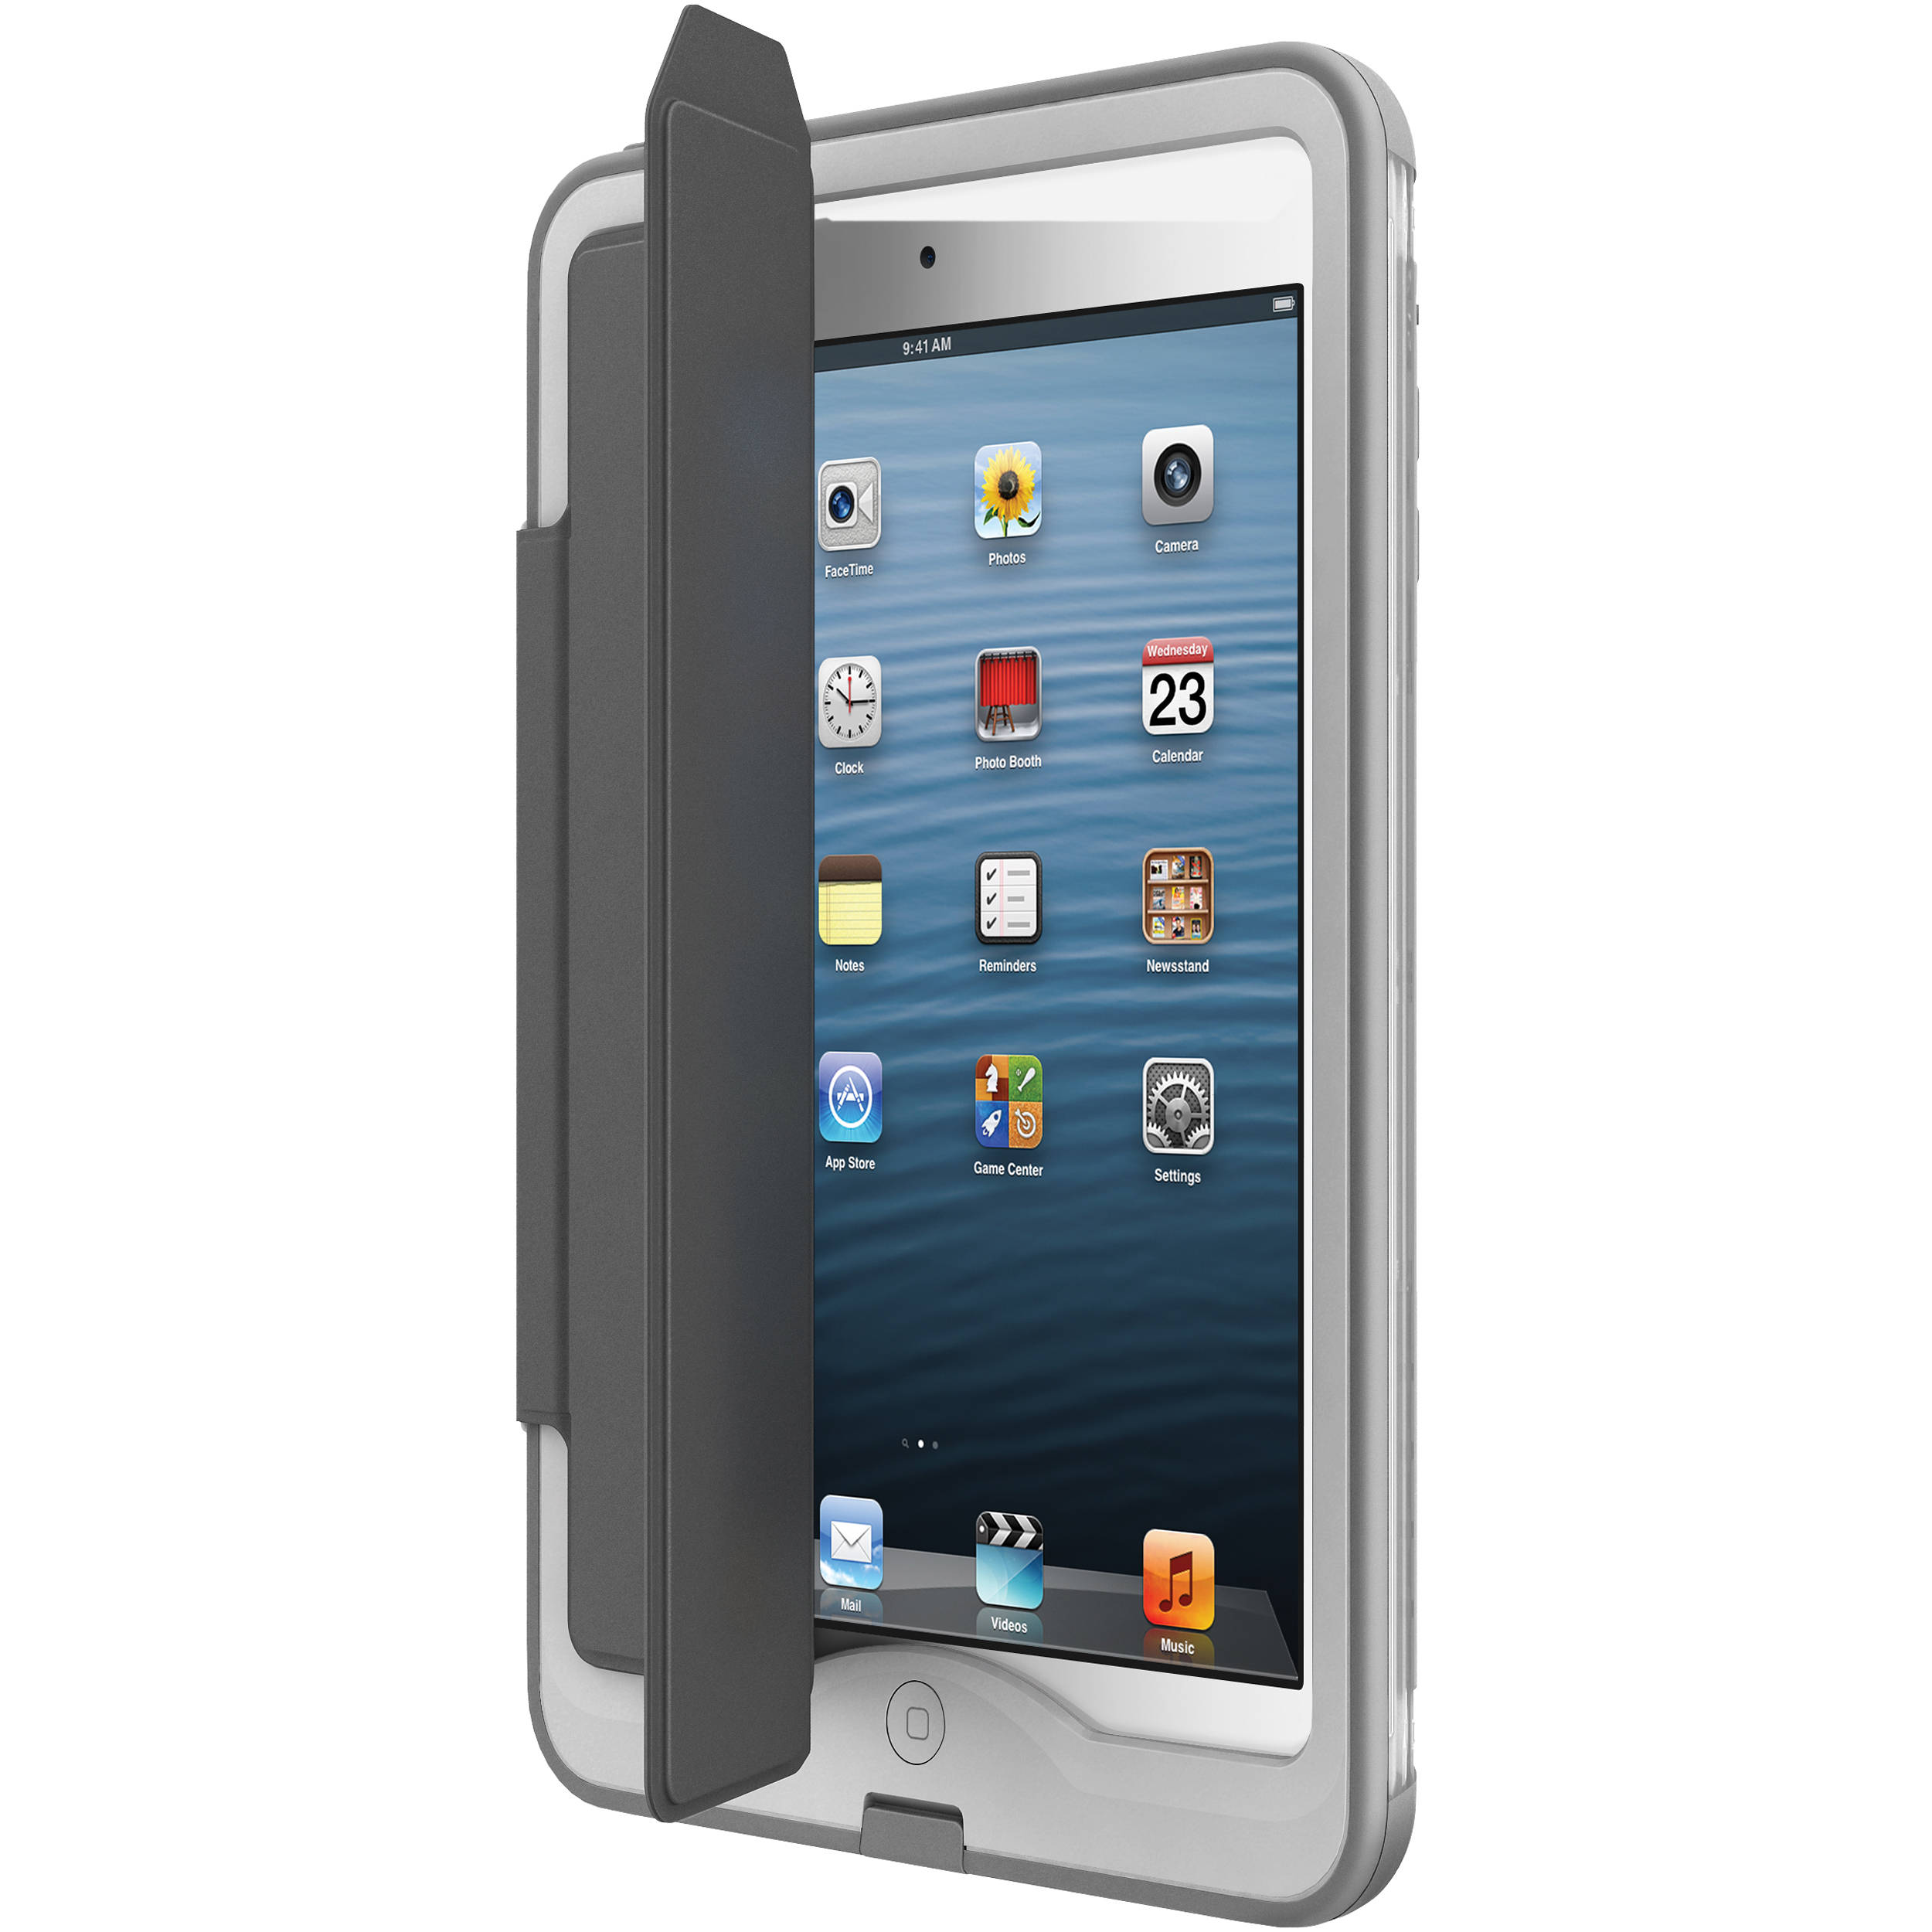 buy online 3f368 0e3be LifeProof Cover + Stand for iPad Air Case (Gray)